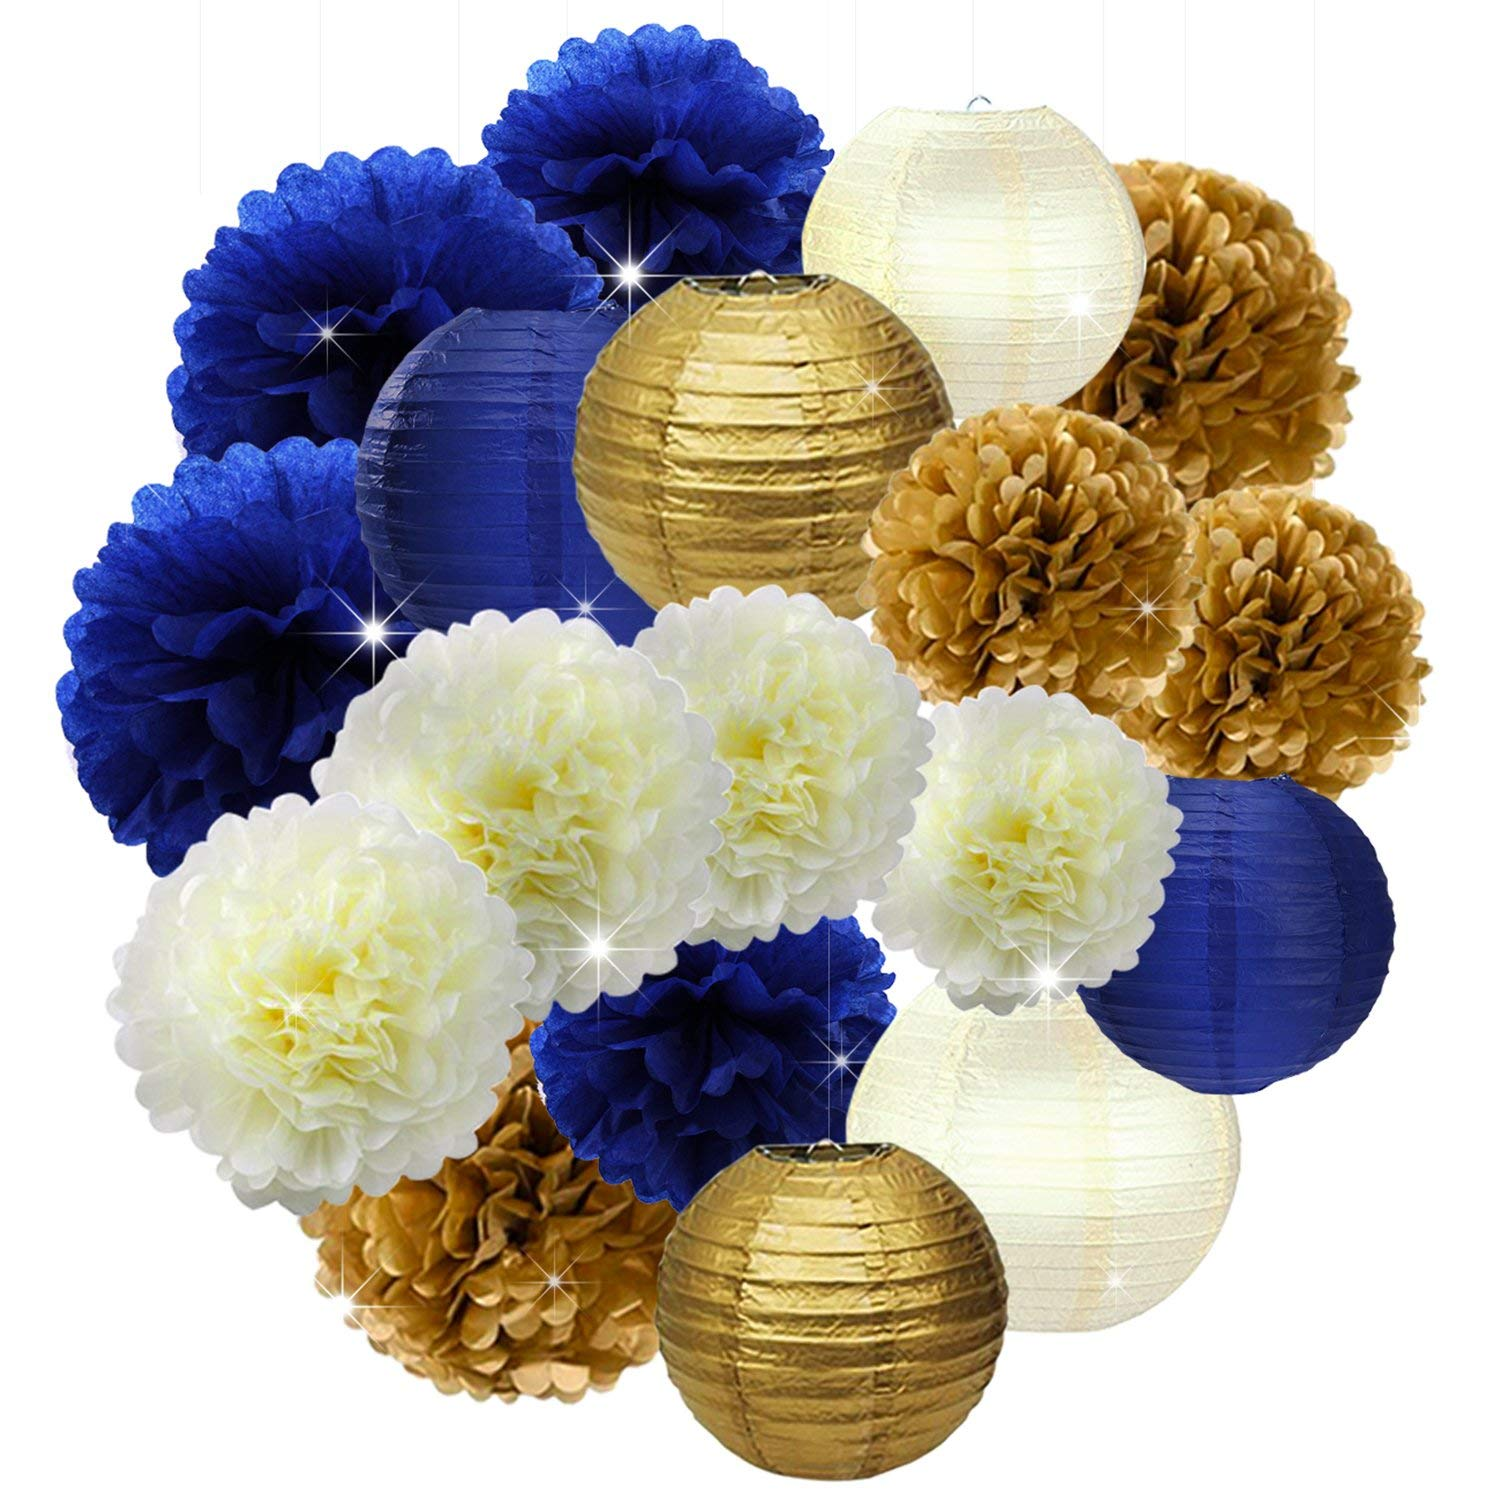 513fdf3a776ec Get Quotations · 18PCs Navy Blue Party Decorations Decor Kit Supplies Navy  Blue Gold Cream 10inch 12inch Tissue Paper